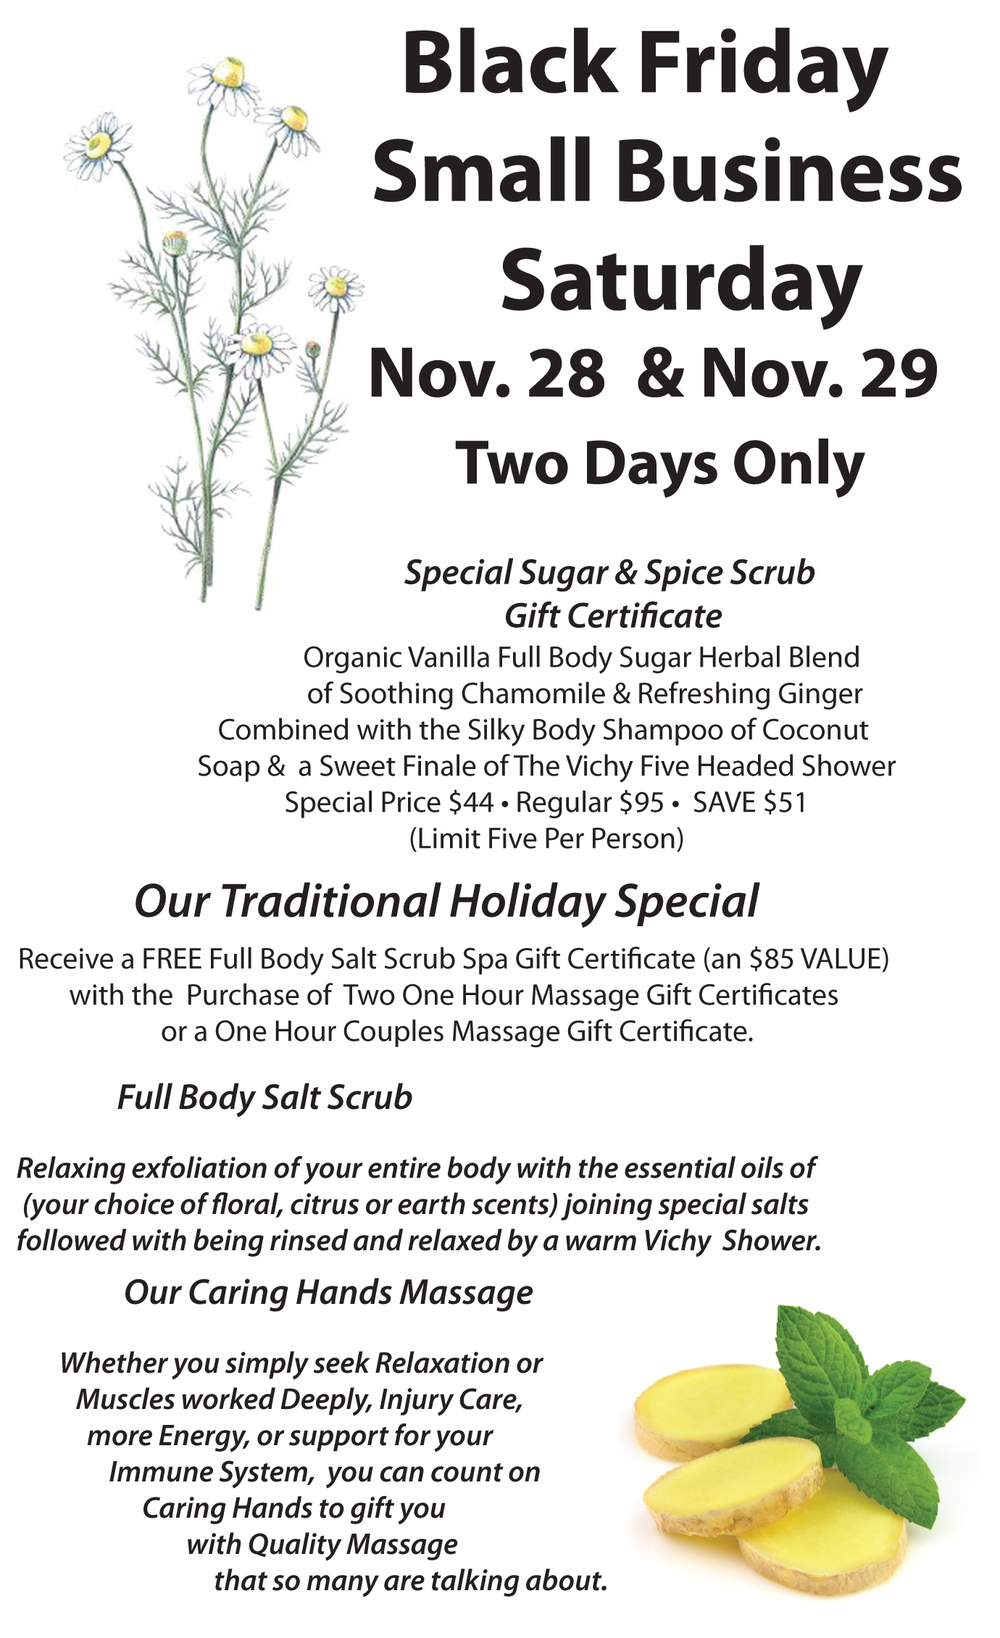 ... OF TRADITIONAL HOLIDAY SPECIAL GIFT CERTIFICATES BEGIN NOVEMBER 28